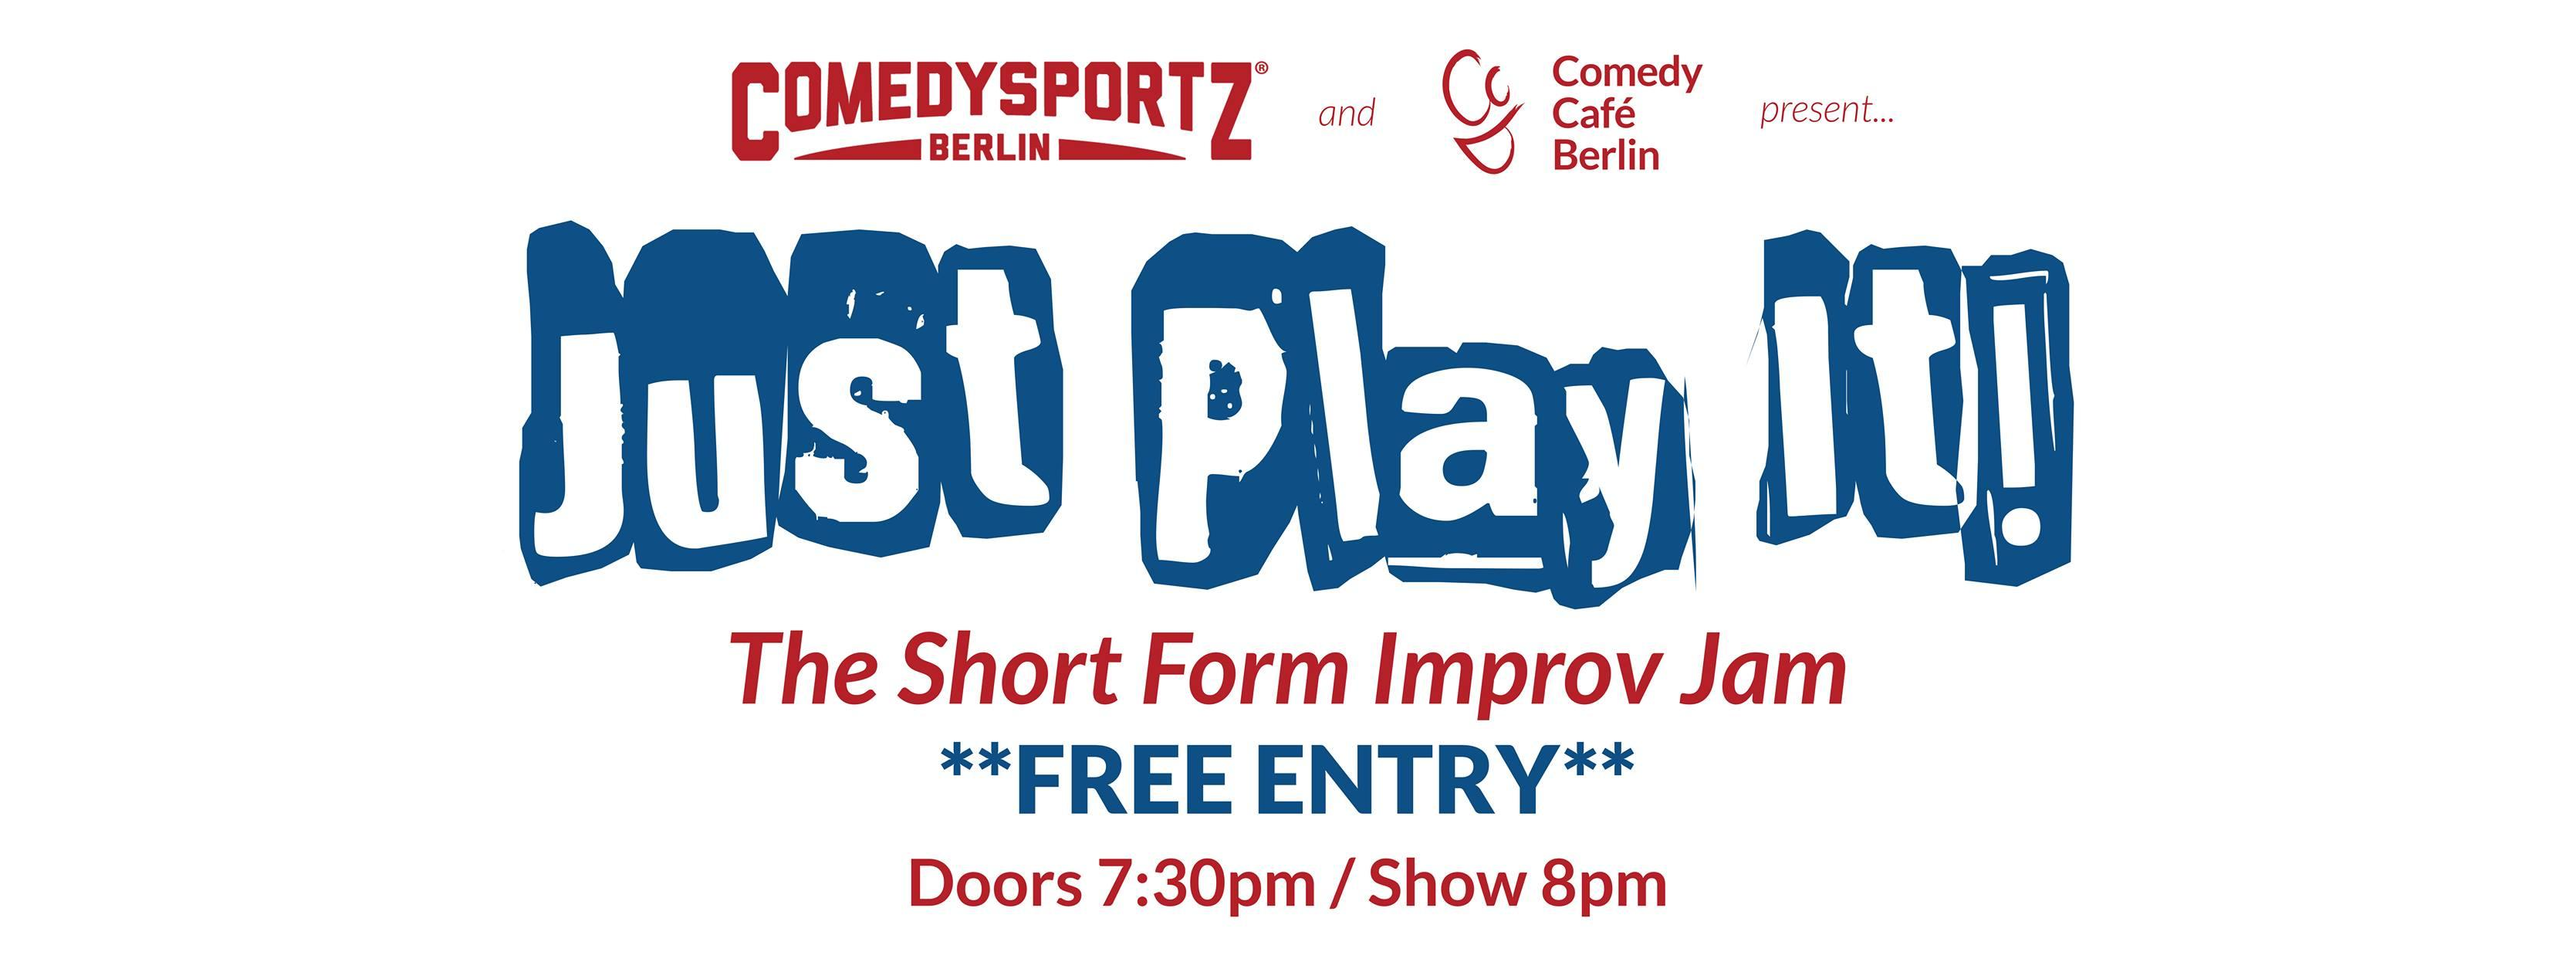 Just Play It! Improv Jam with ComedySportz Be